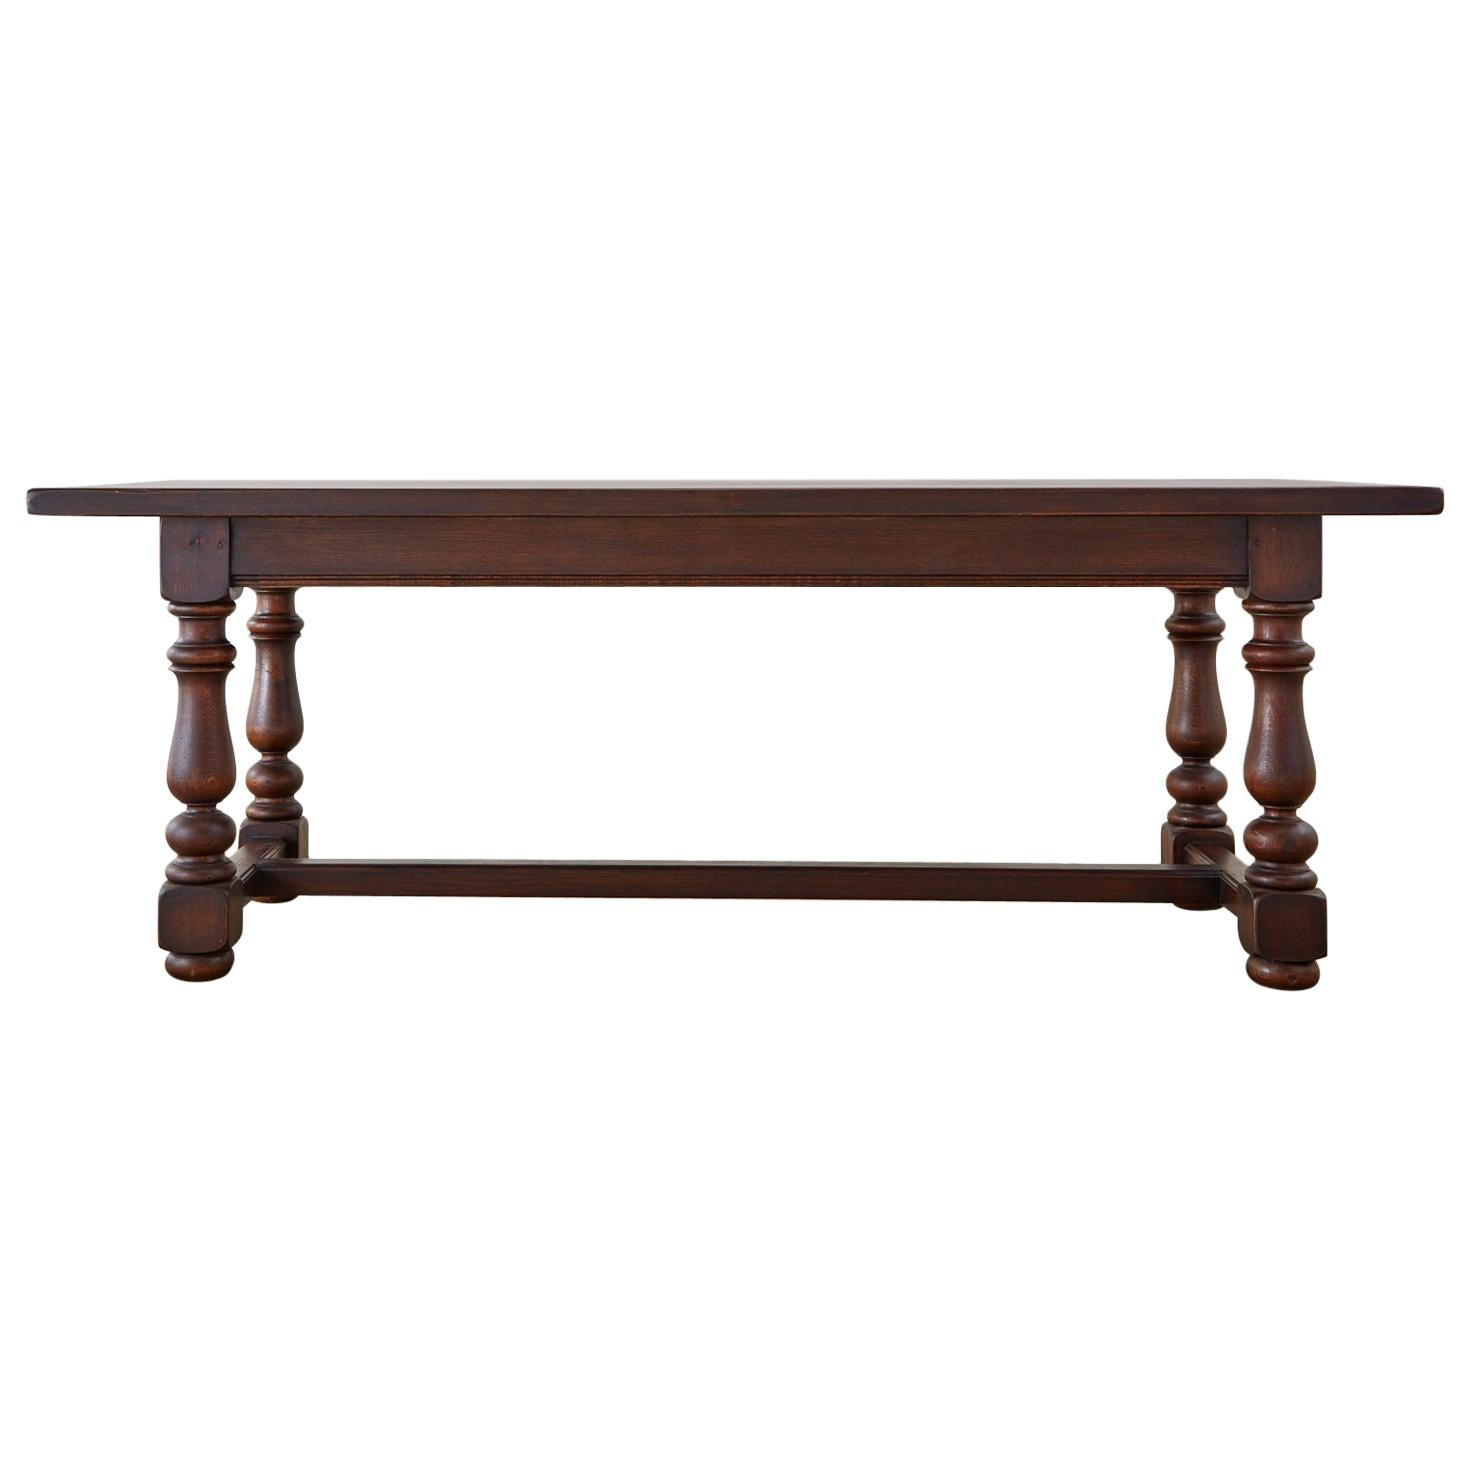 French Provincial Style Oak Farmhouse Trestle Dining Table